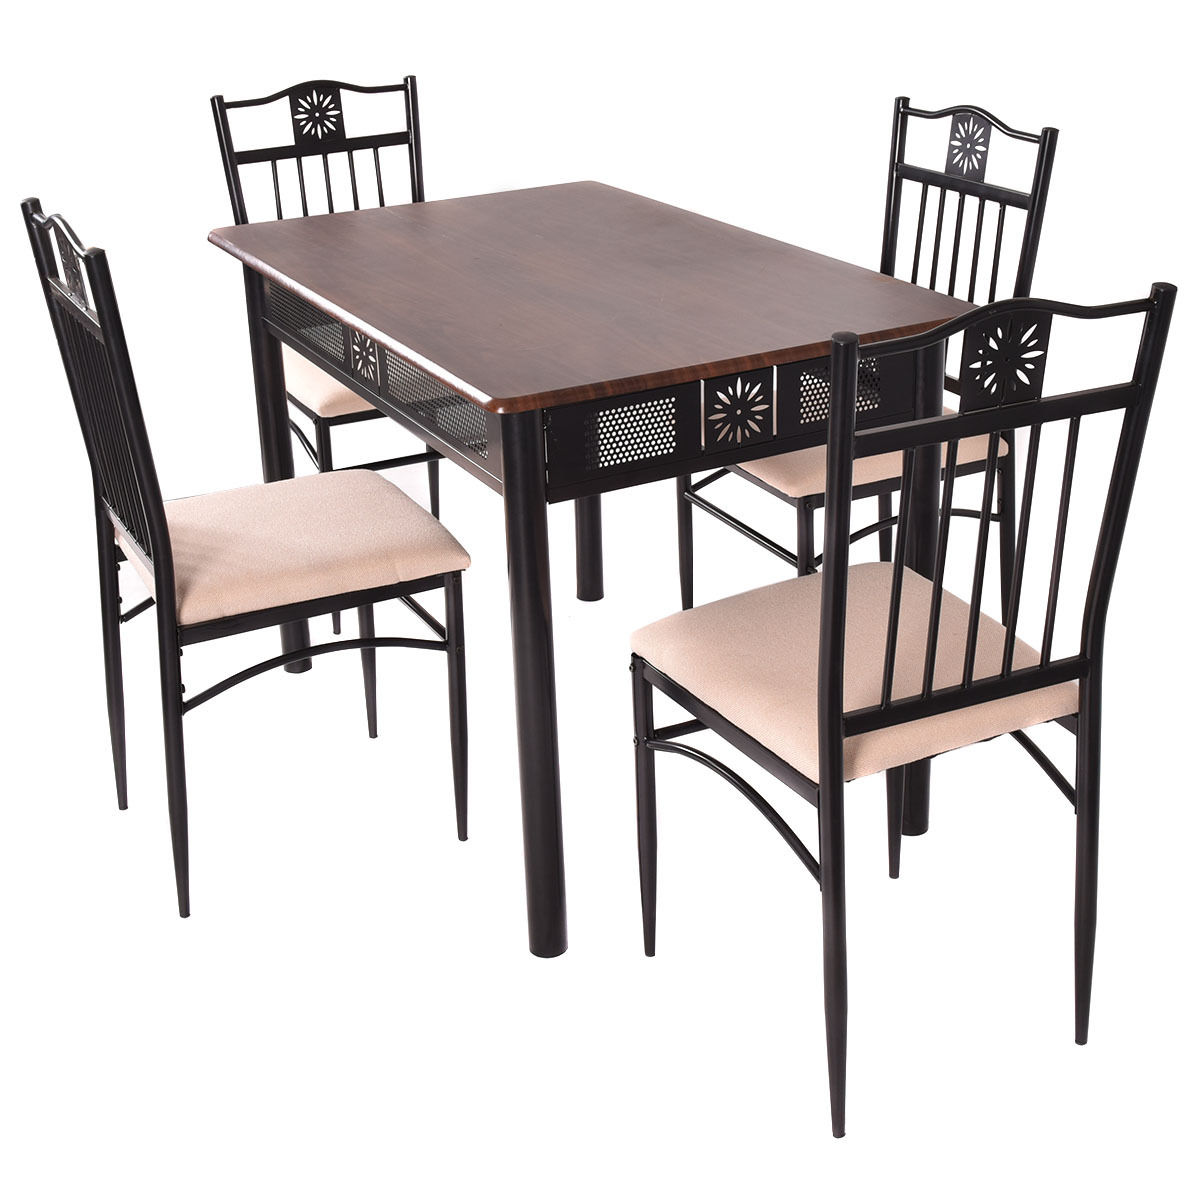 Beau Product Image Costway 5 Piece Dining Set Wood Metal Table And 4 Chairs  Kitchen Breakfast Furniture